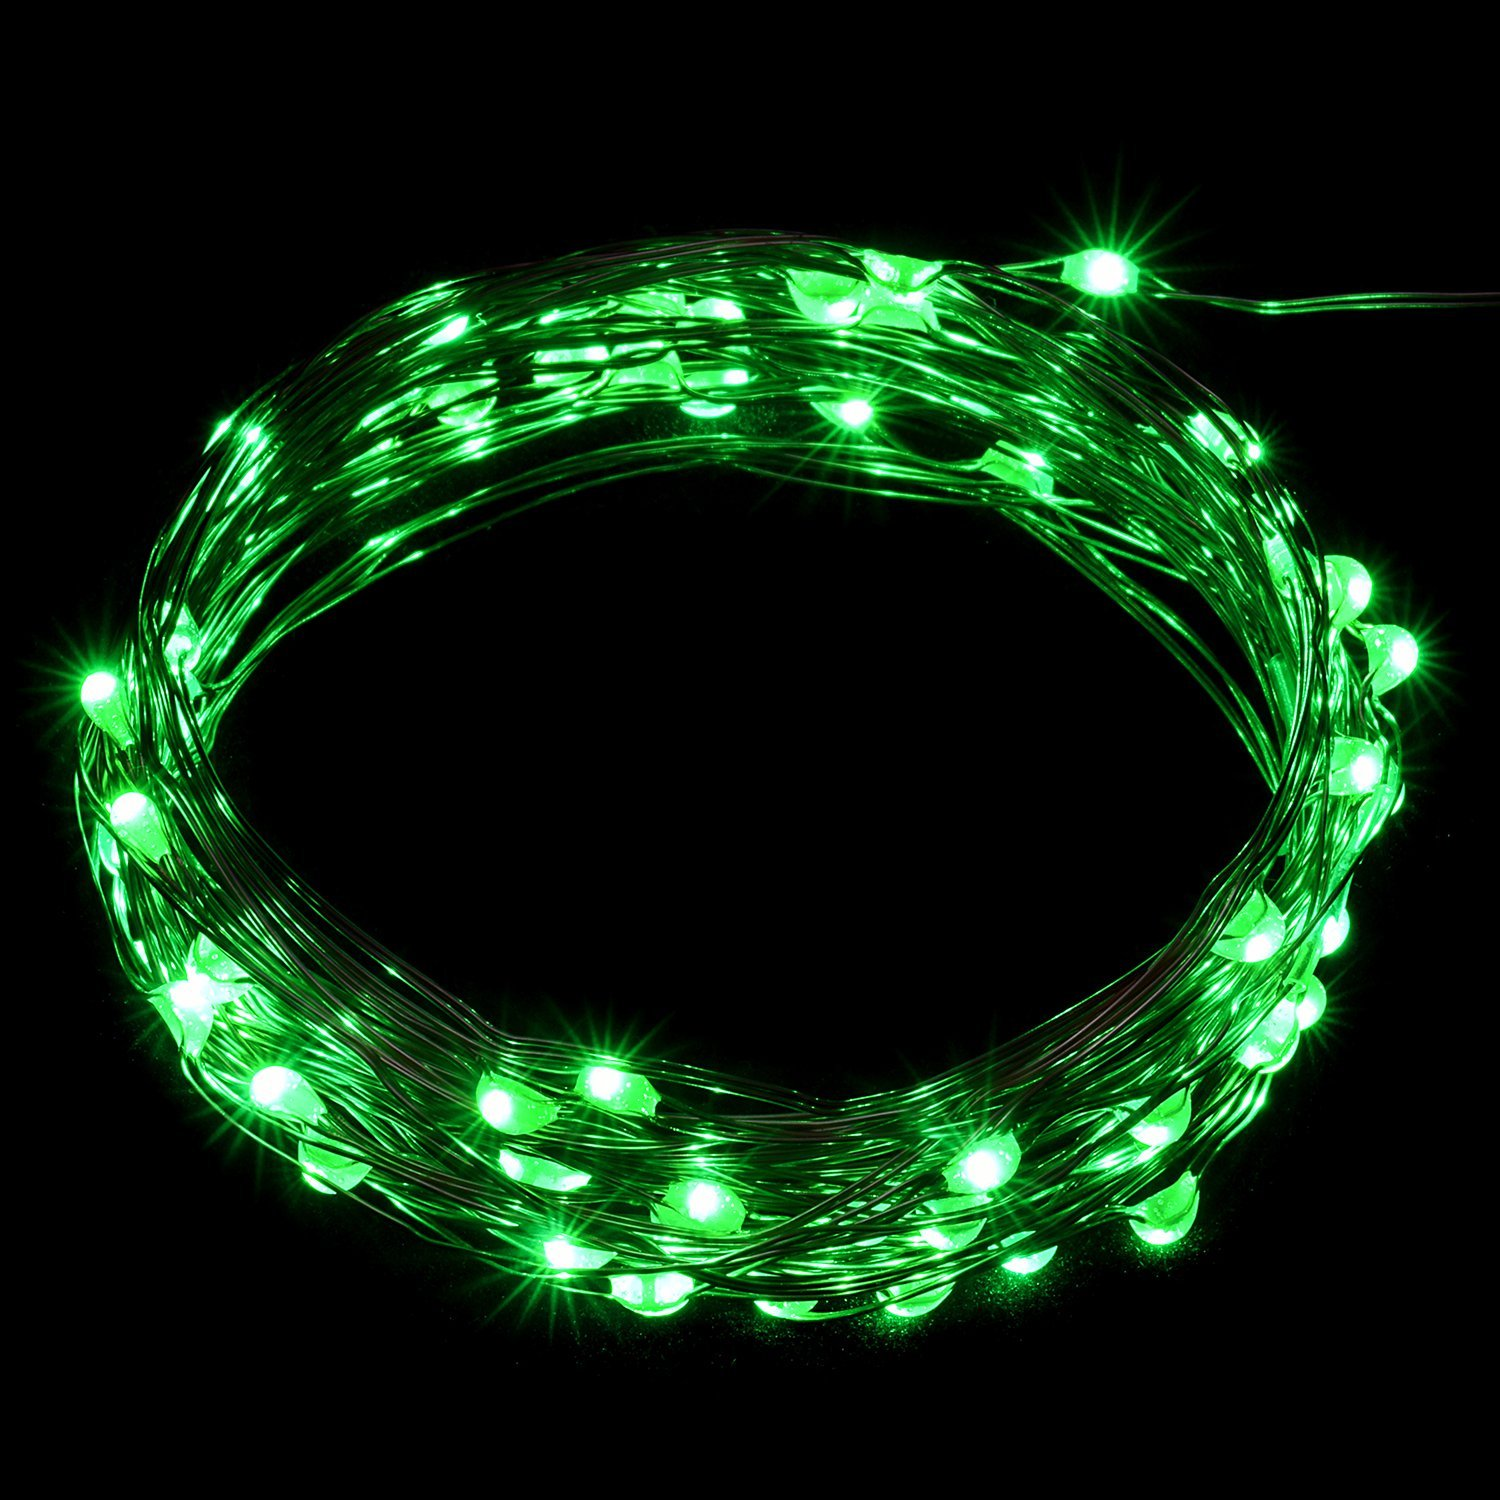 Oak Leaf 2 Set of 60 LEDs Starry Lights USB LED String Lights Copper Wire for Home Bedroom Party Wedding Decoration (19.7ft,Green)